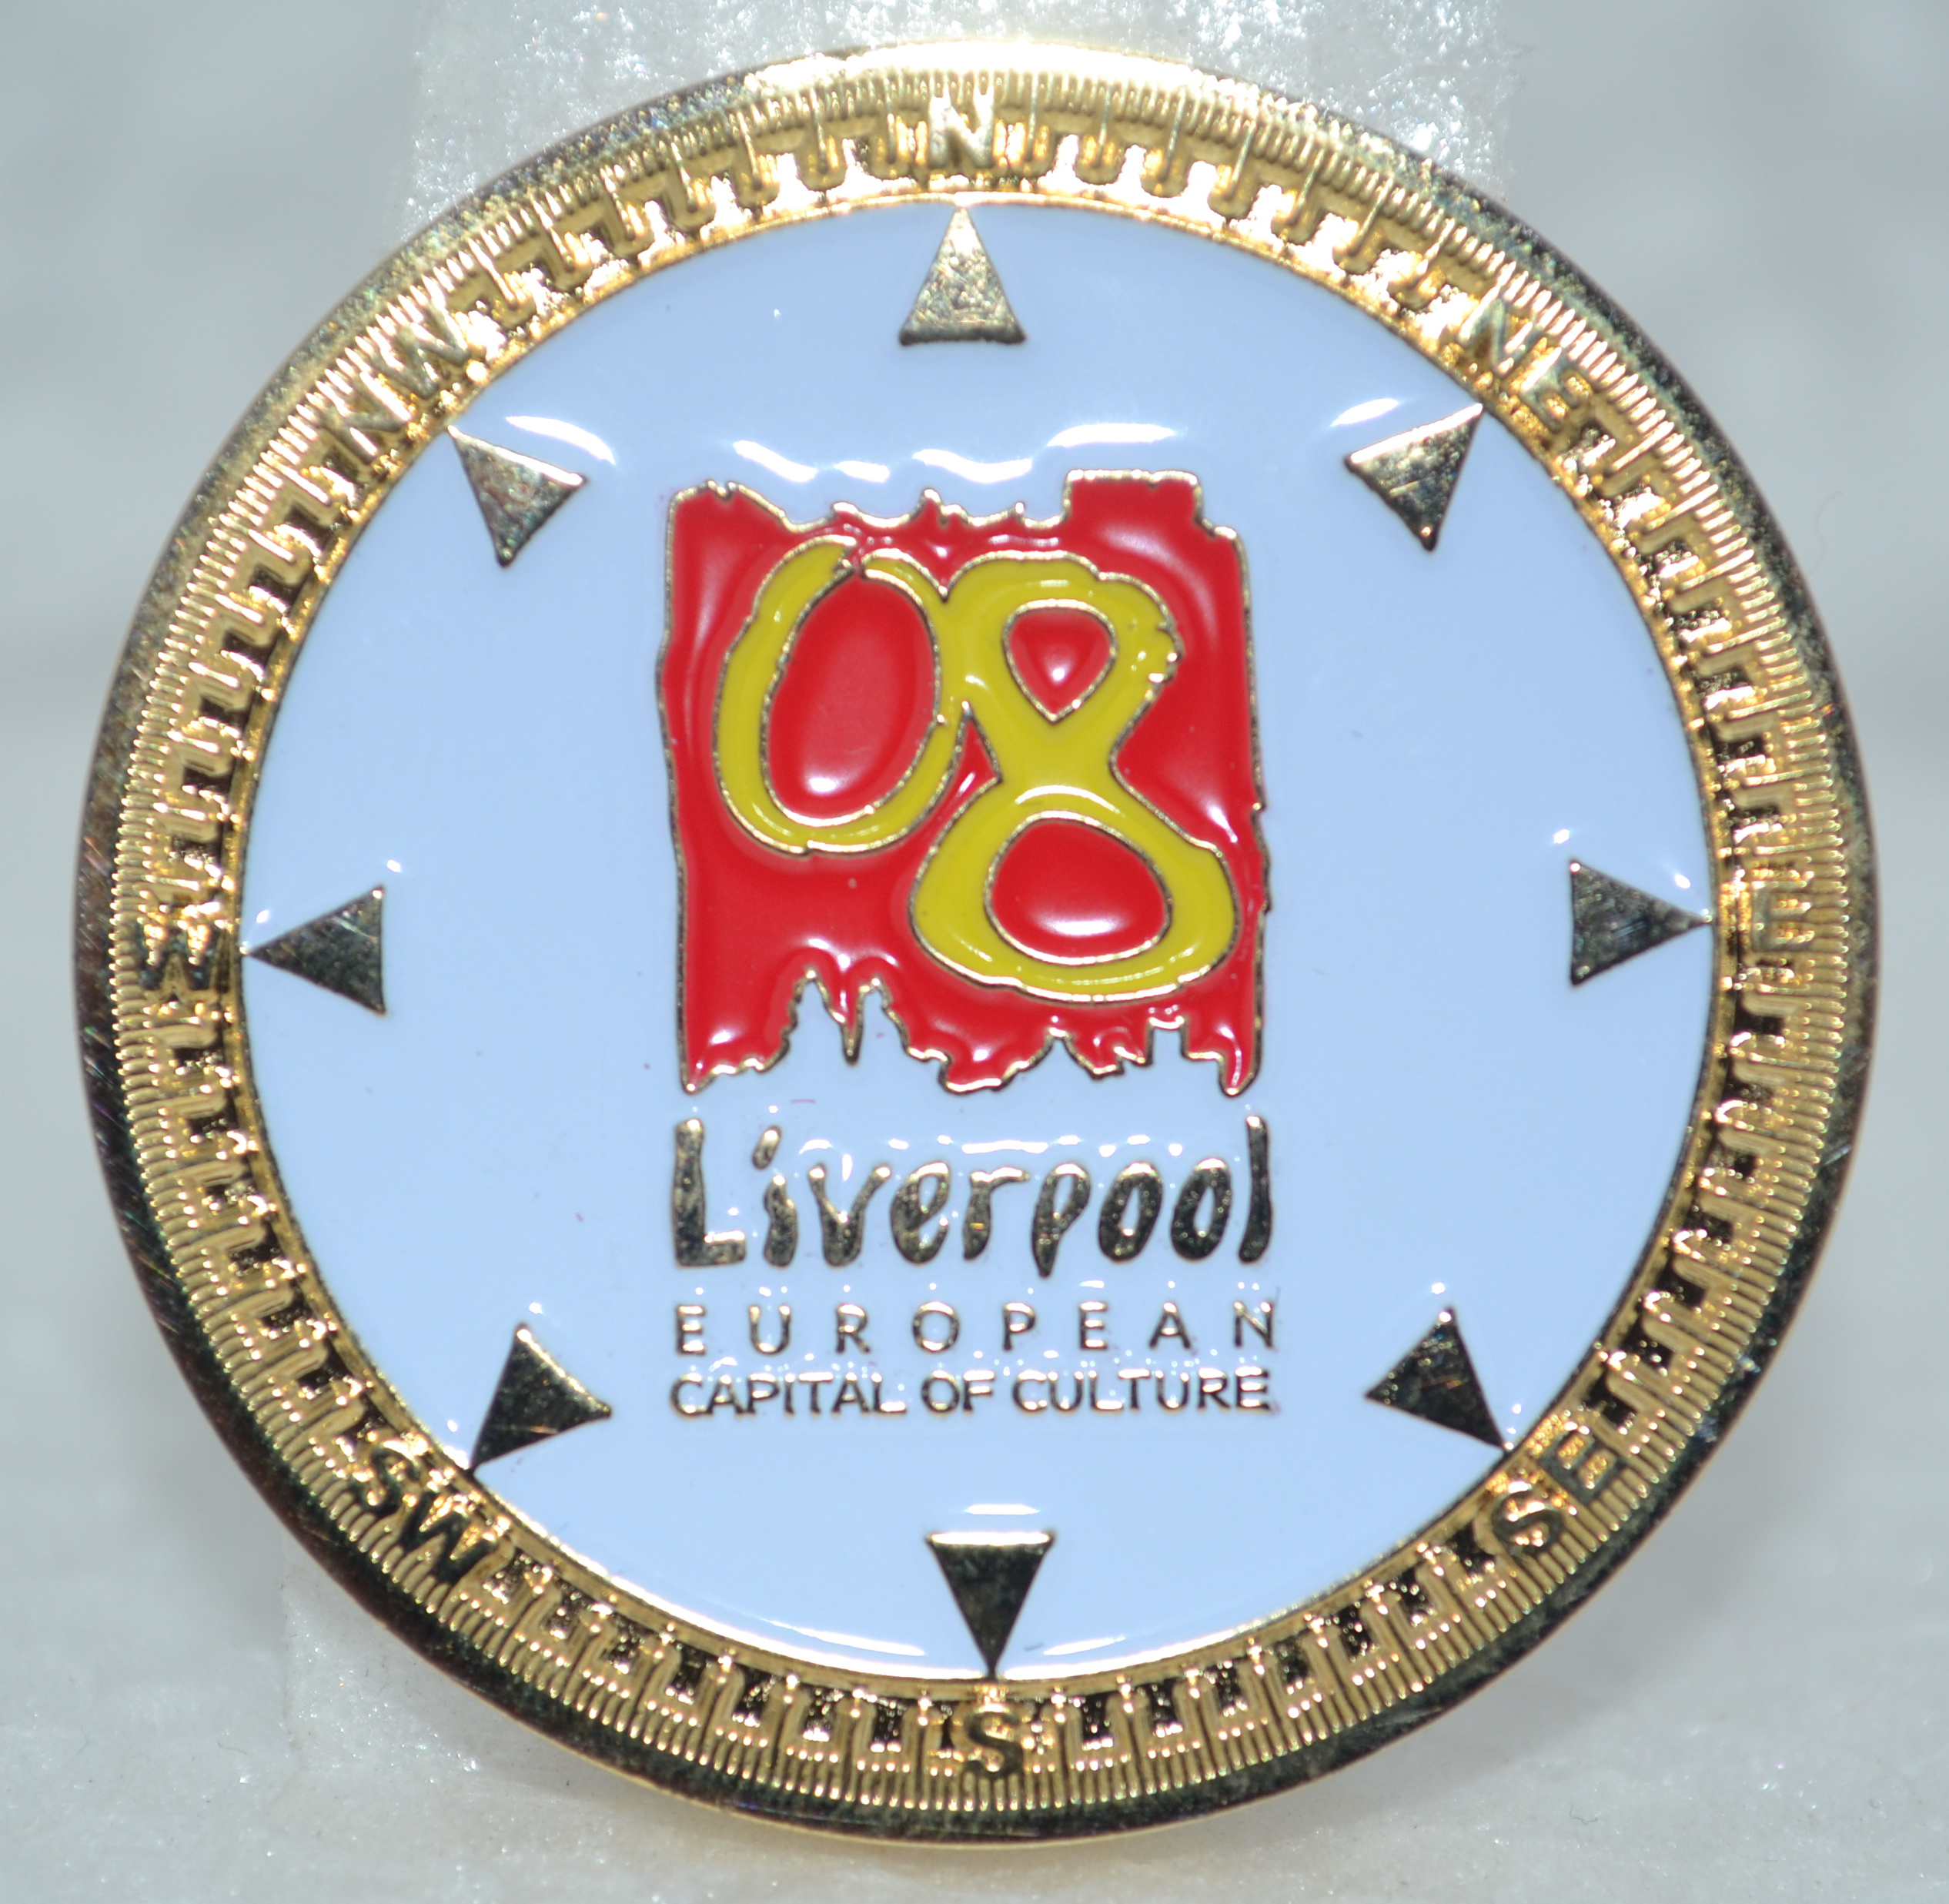 Liverpool 2008 Commemorative Coin - gold